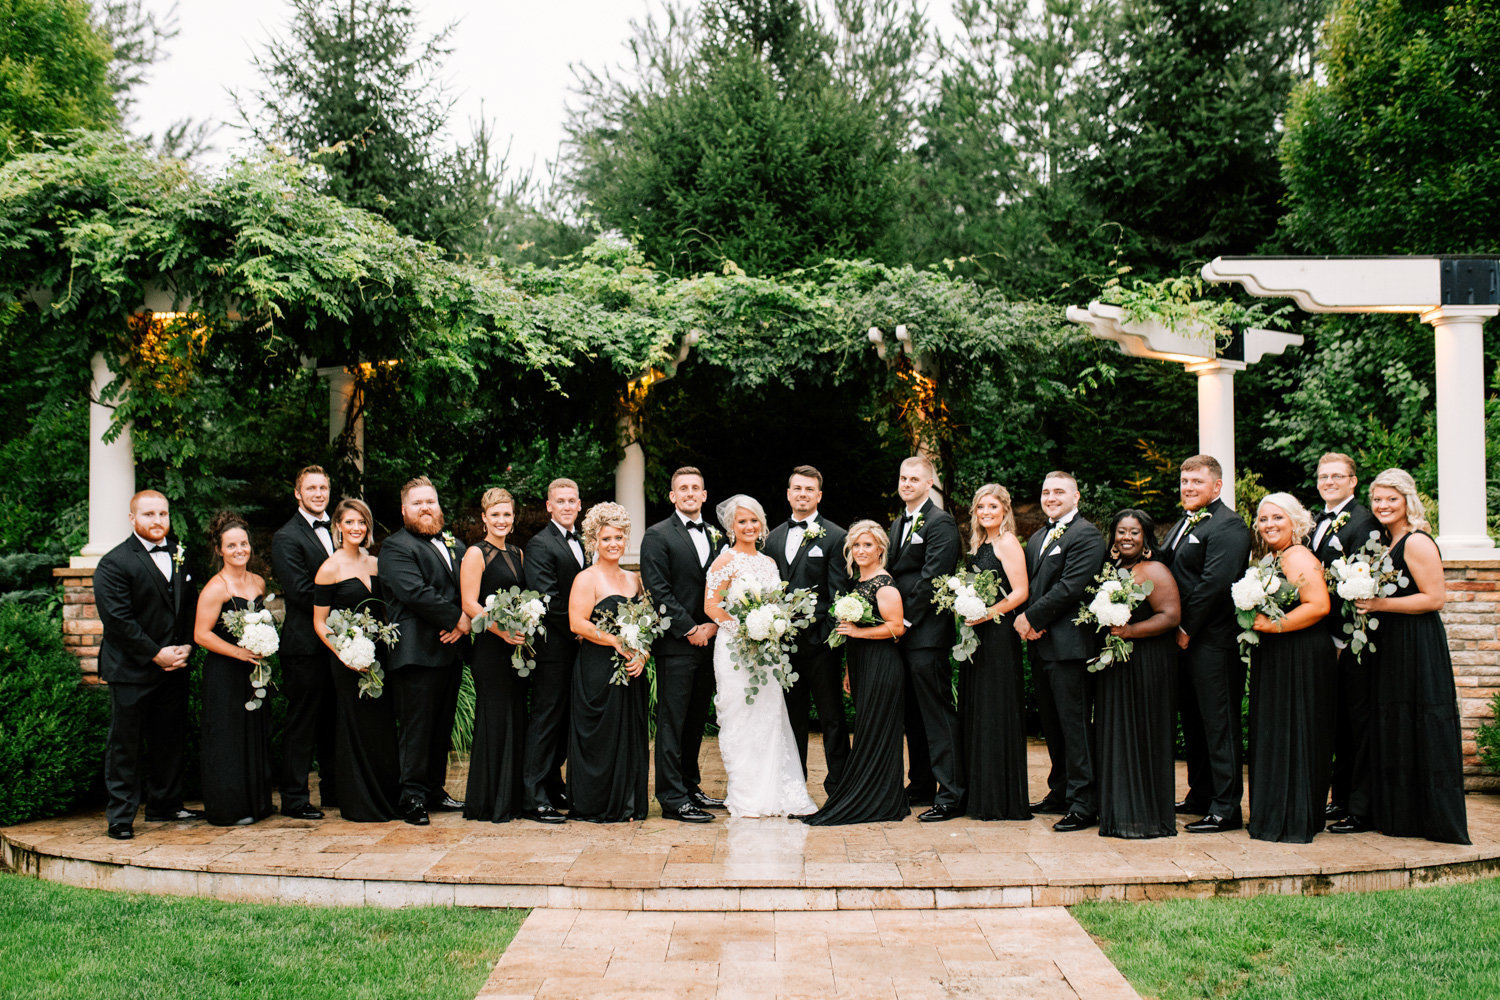 Wedding-Photographer-Lafayette-Indiana-71